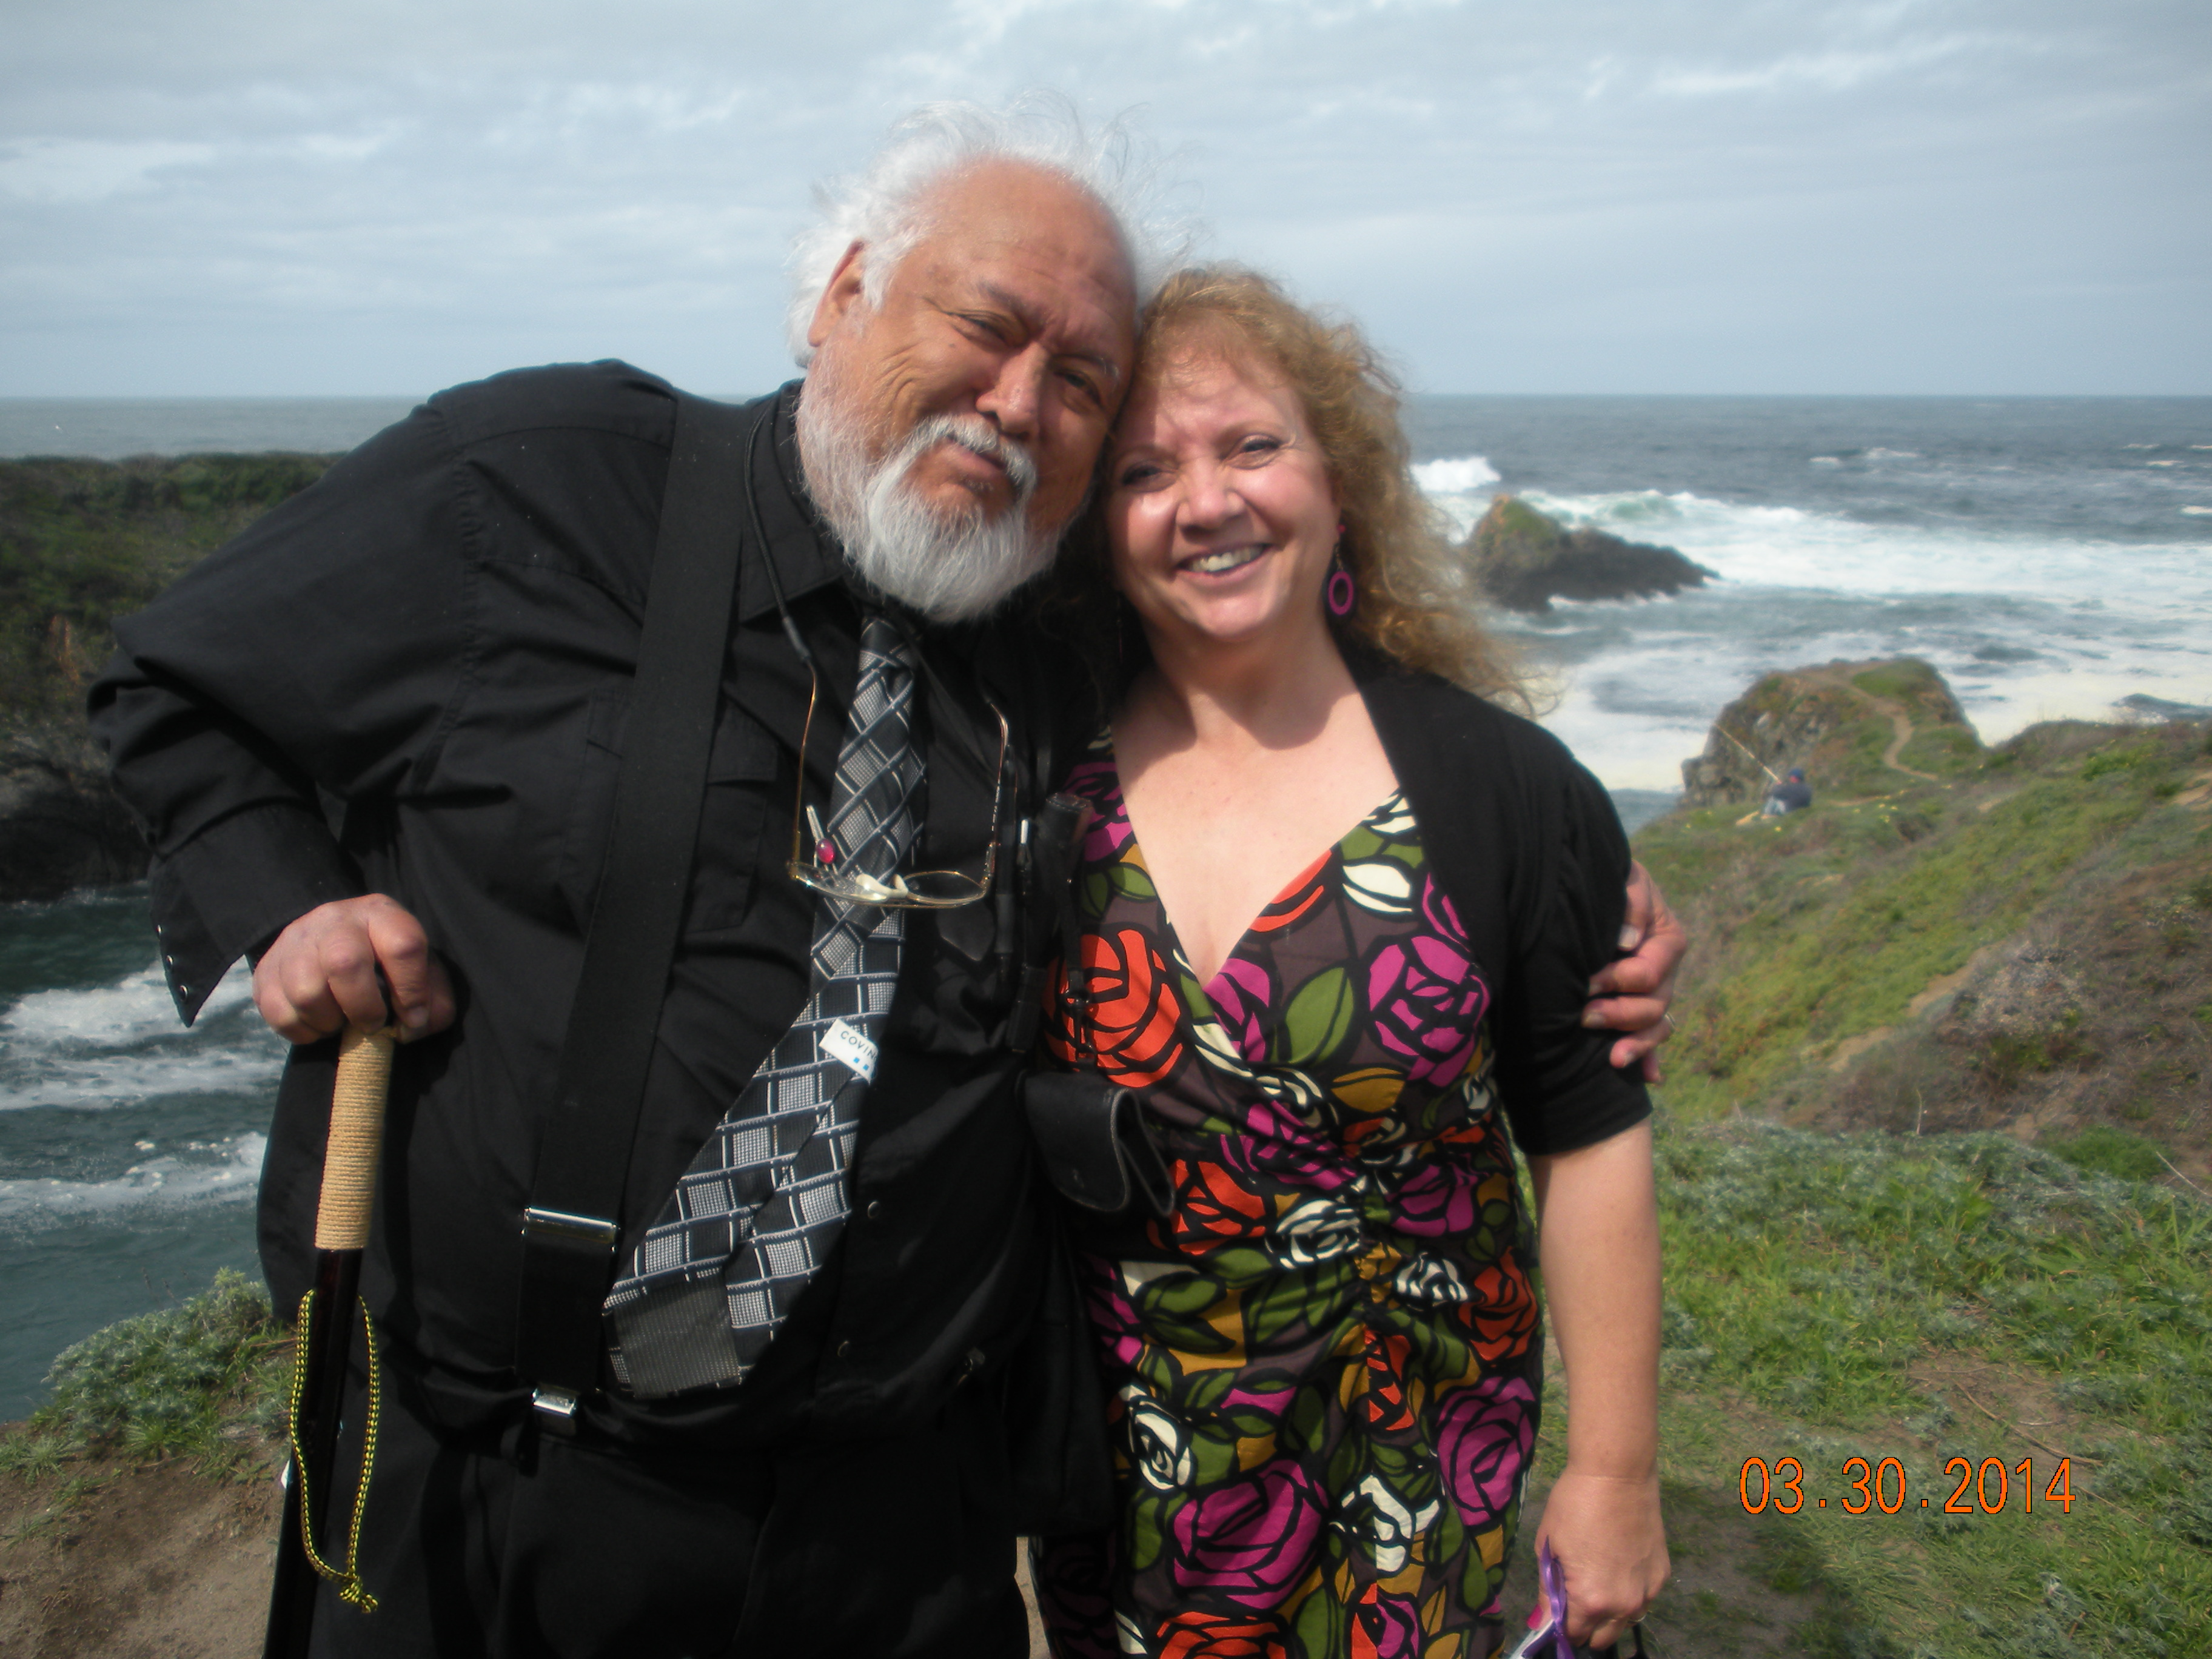 Dave and Pam  at Mendocino Coast